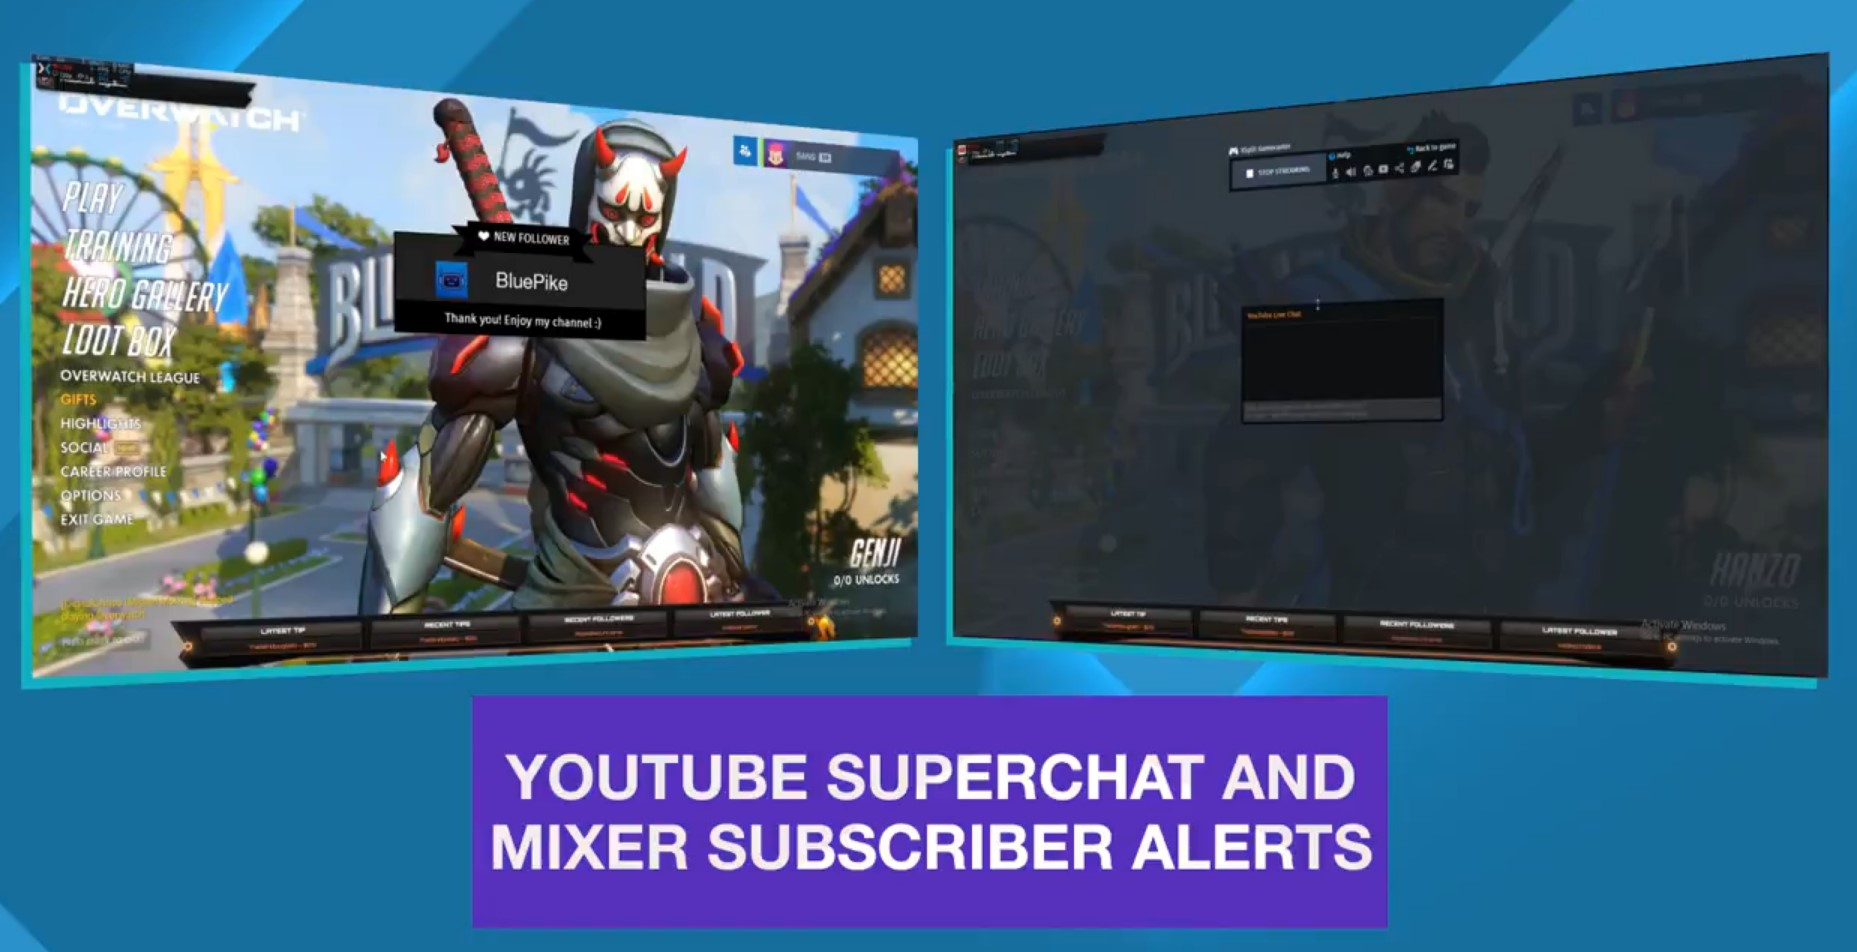 XSplit YouTube Mixer Alerts